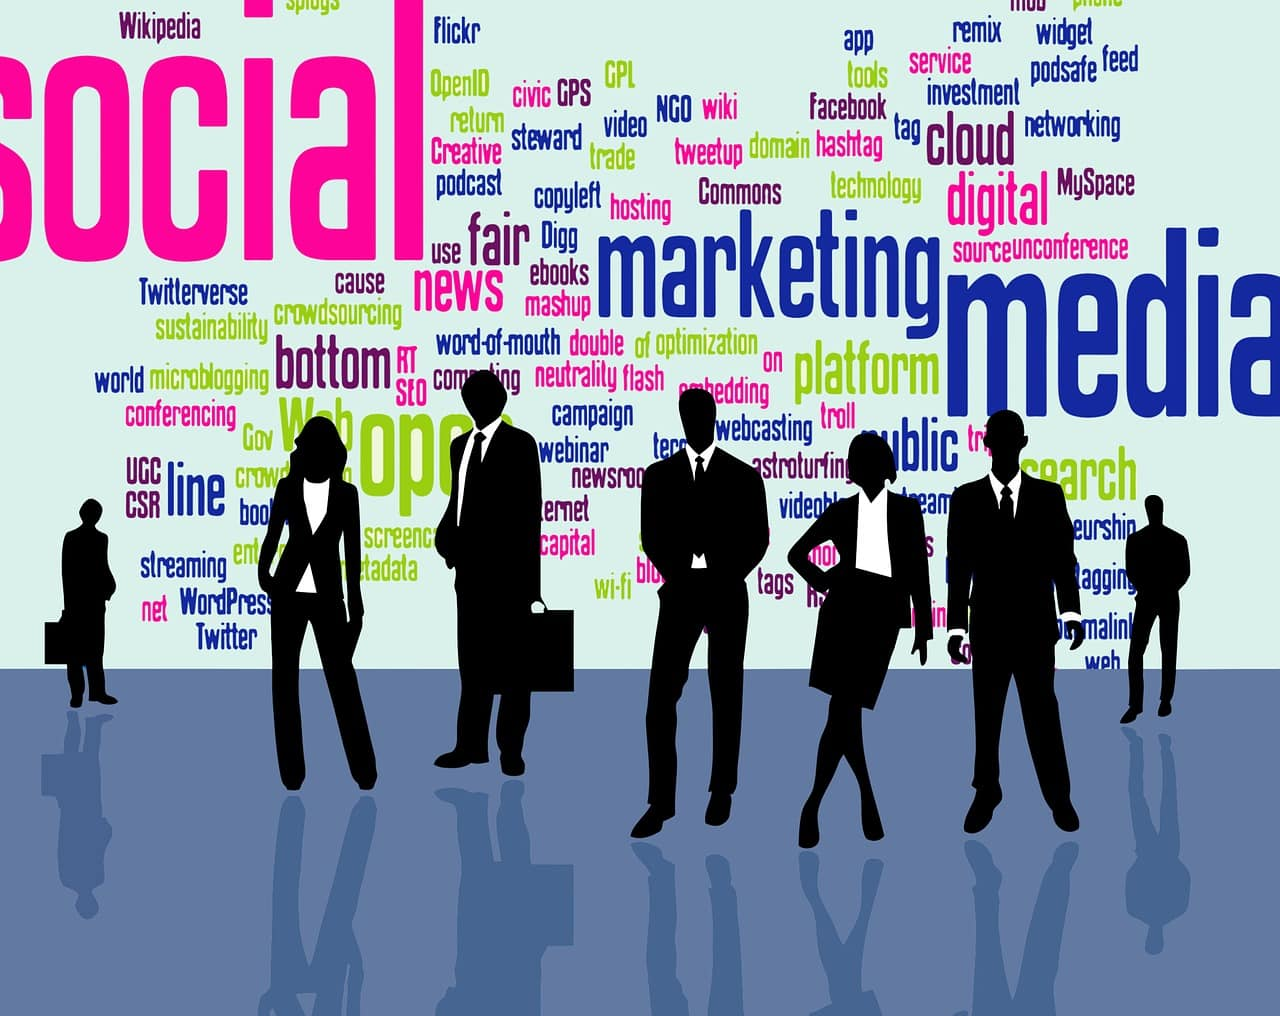 Various aspects of online marketing with a silhouette of businesspeople standing in front